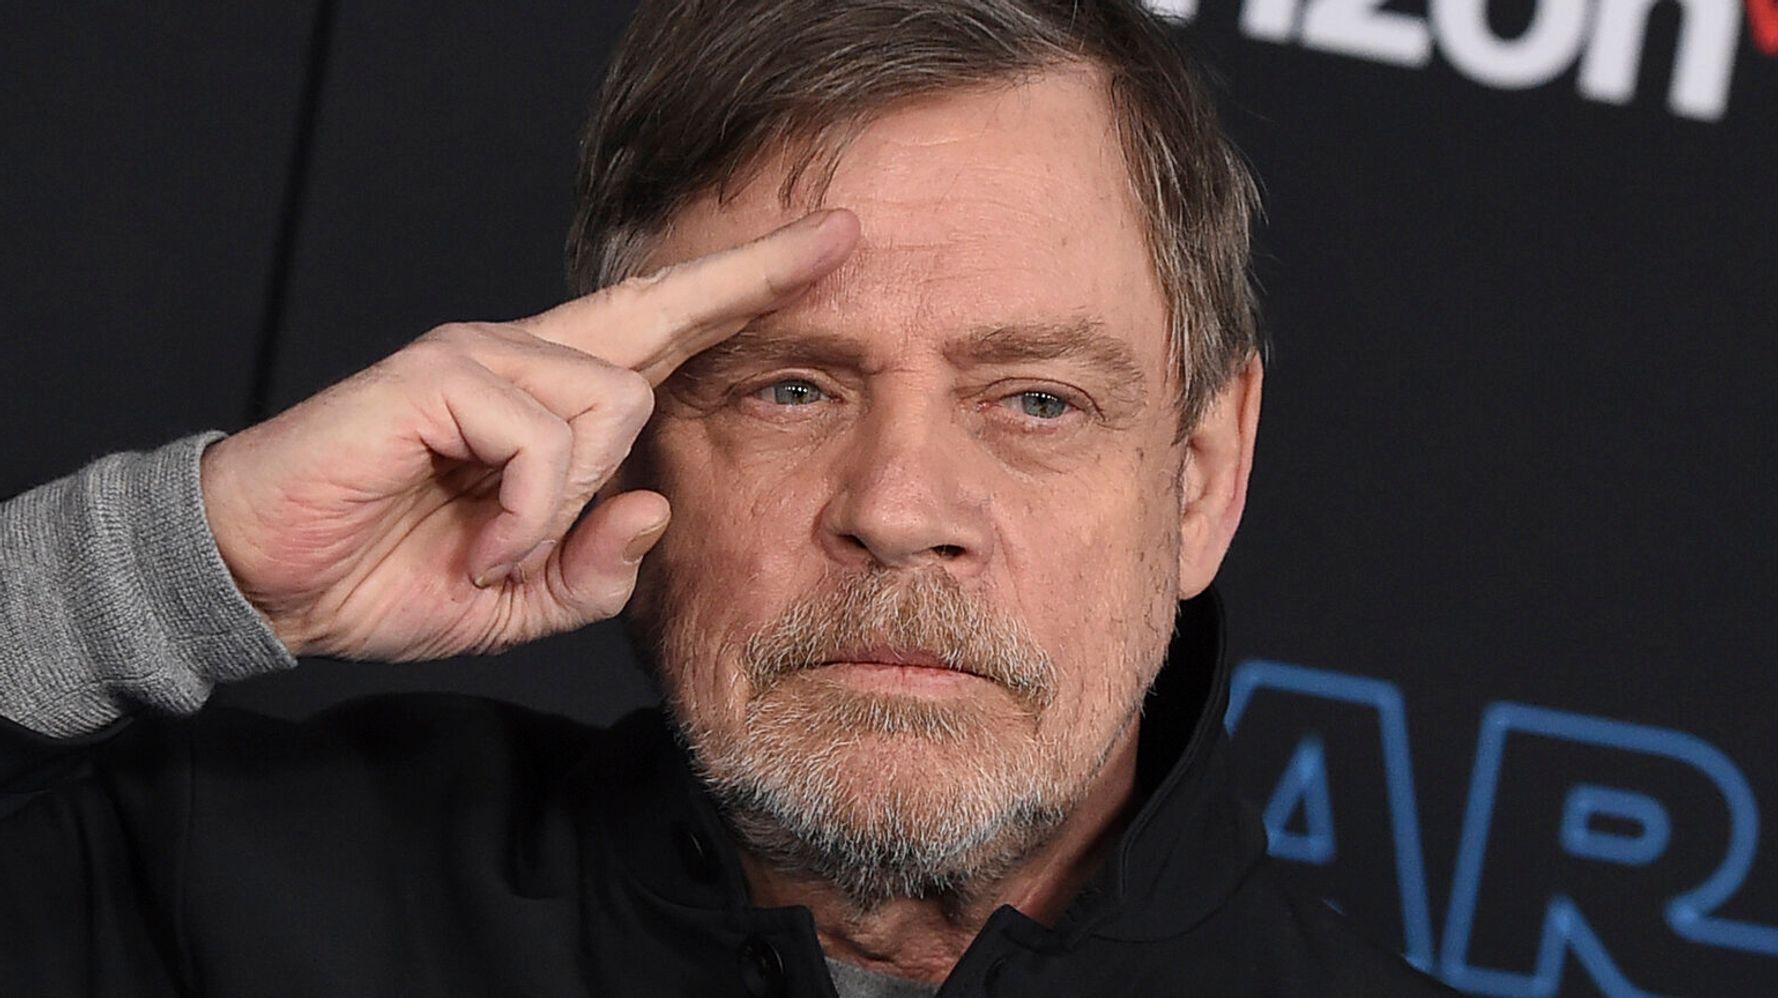 Westlake Legal Group 5e0da85525000079bad31954 Mark Hamill Has The Question People Should Ask About The Trump Impeachment